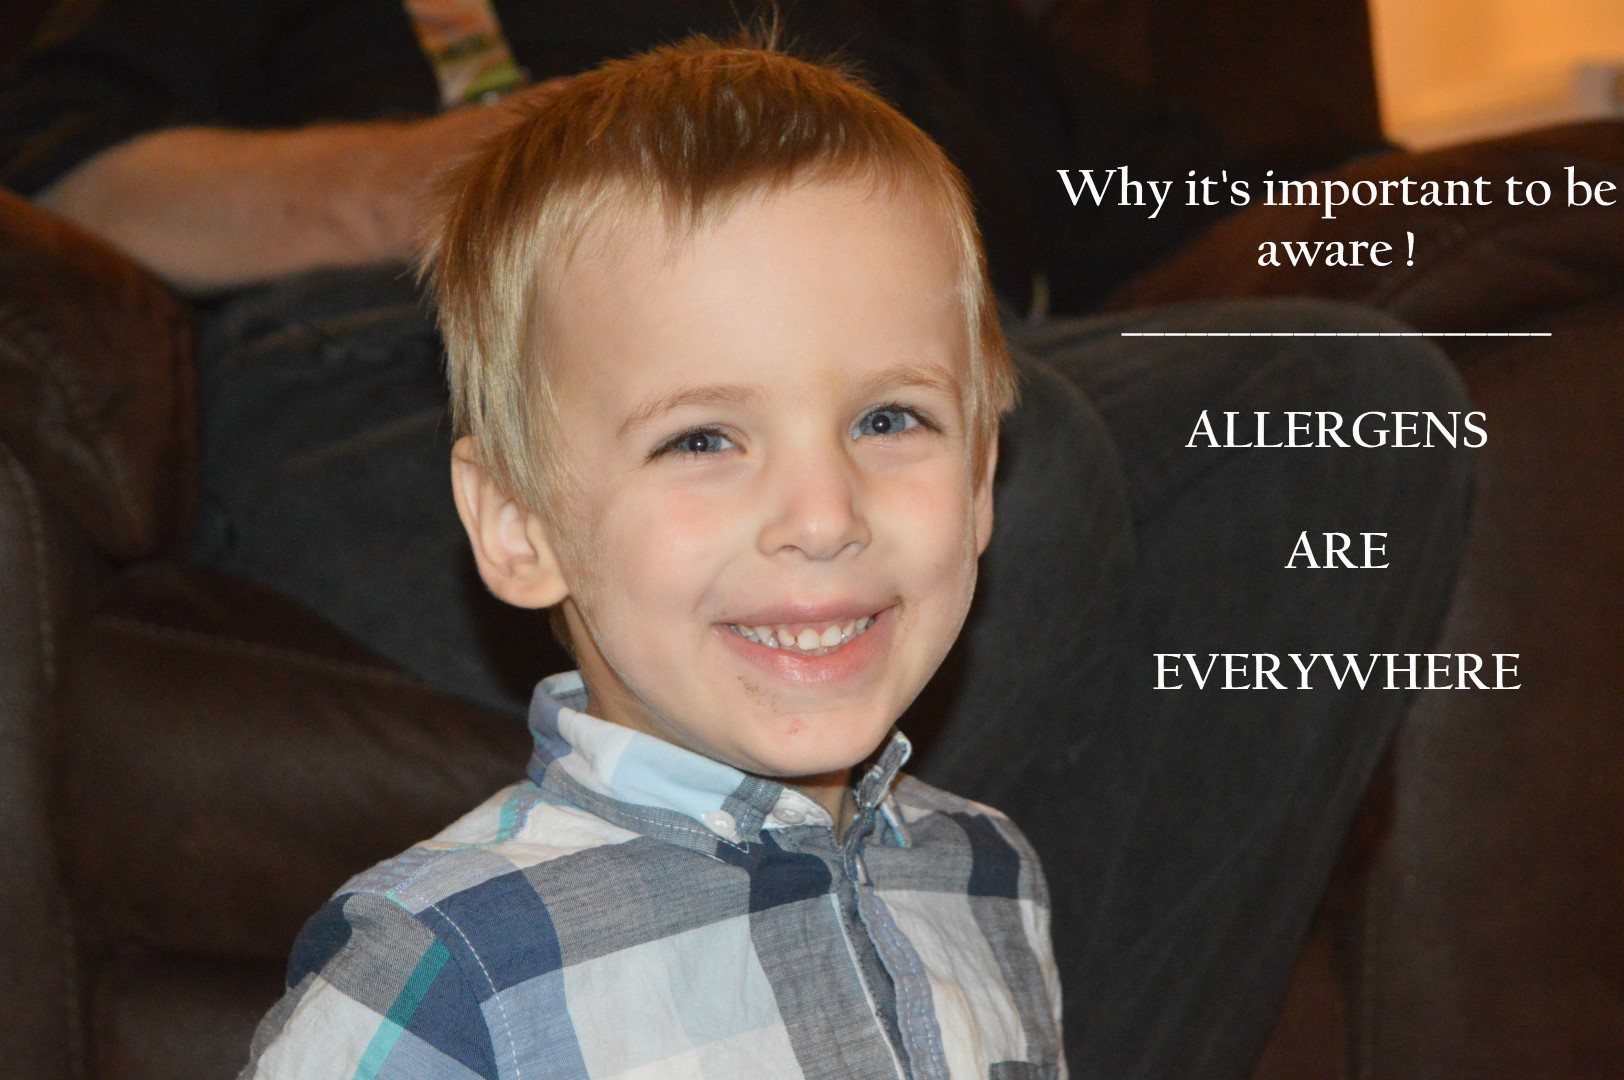 Allergens are everywhere 2